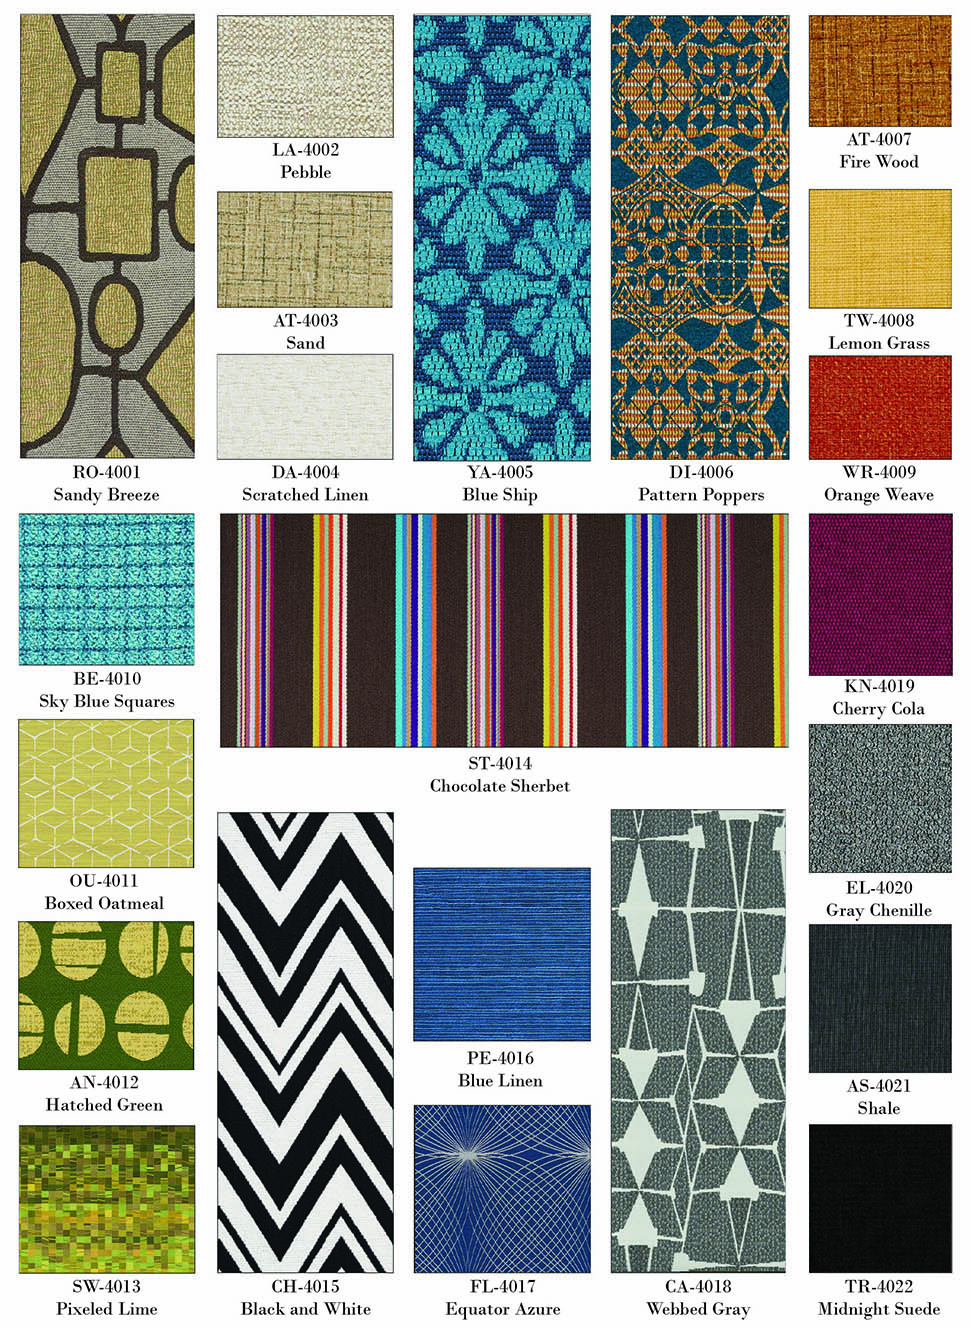 SIMS Booth Seating Fabric Selections